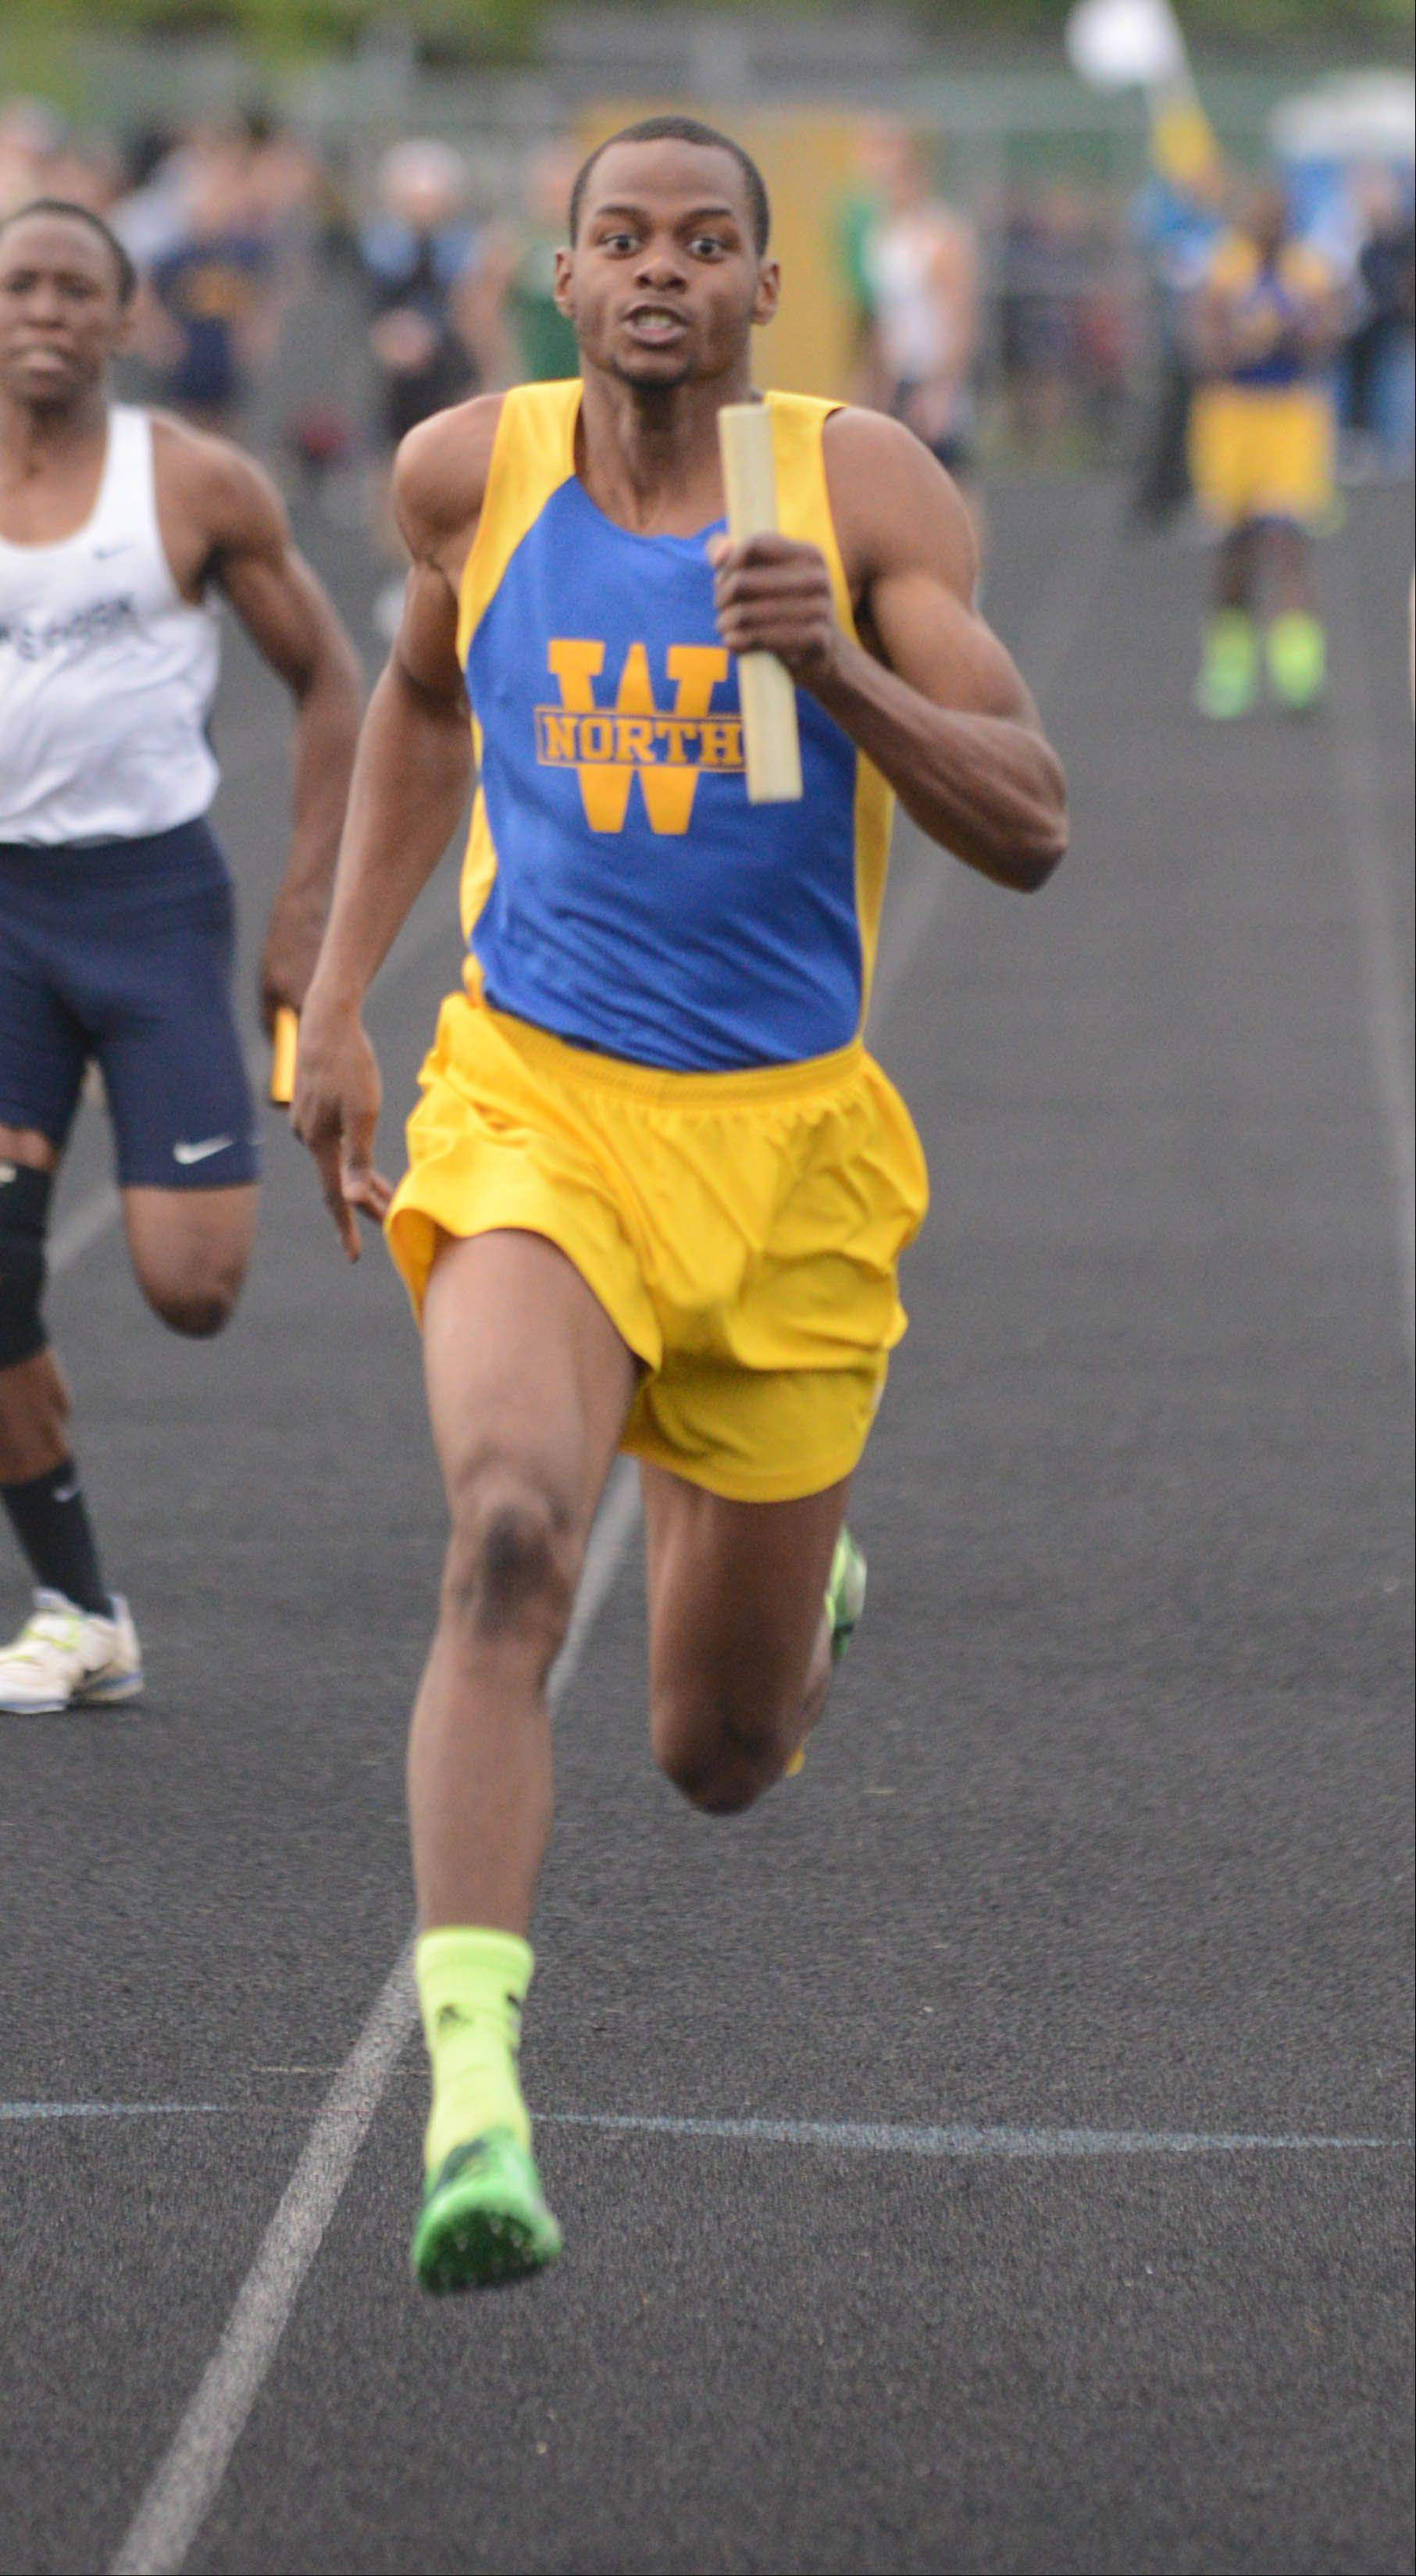 Zach Gordon of Wheaton North runs in the 4x100 Meter relay during the Class 3A Glenbard North boys track sectional finals Friday.